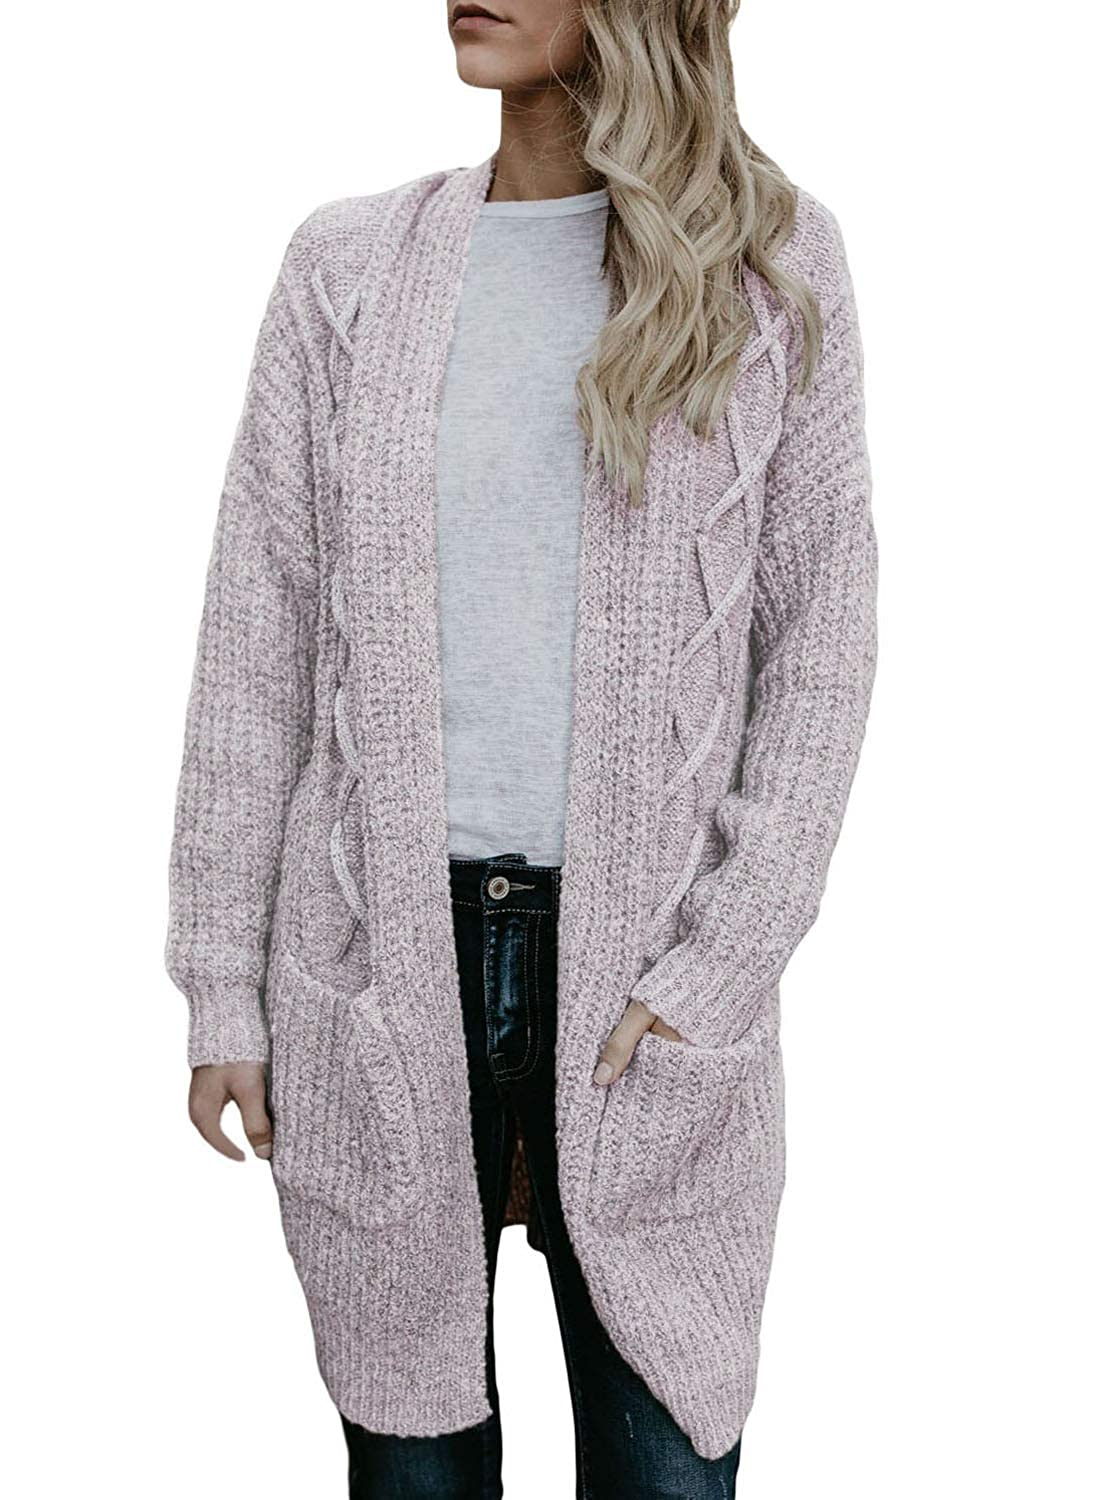 2161f9a99d Womens Open Front Long Sleeve Chunky Cable Knit Long Cardigans Sweater  Pockets Sweater Features  Open Neck